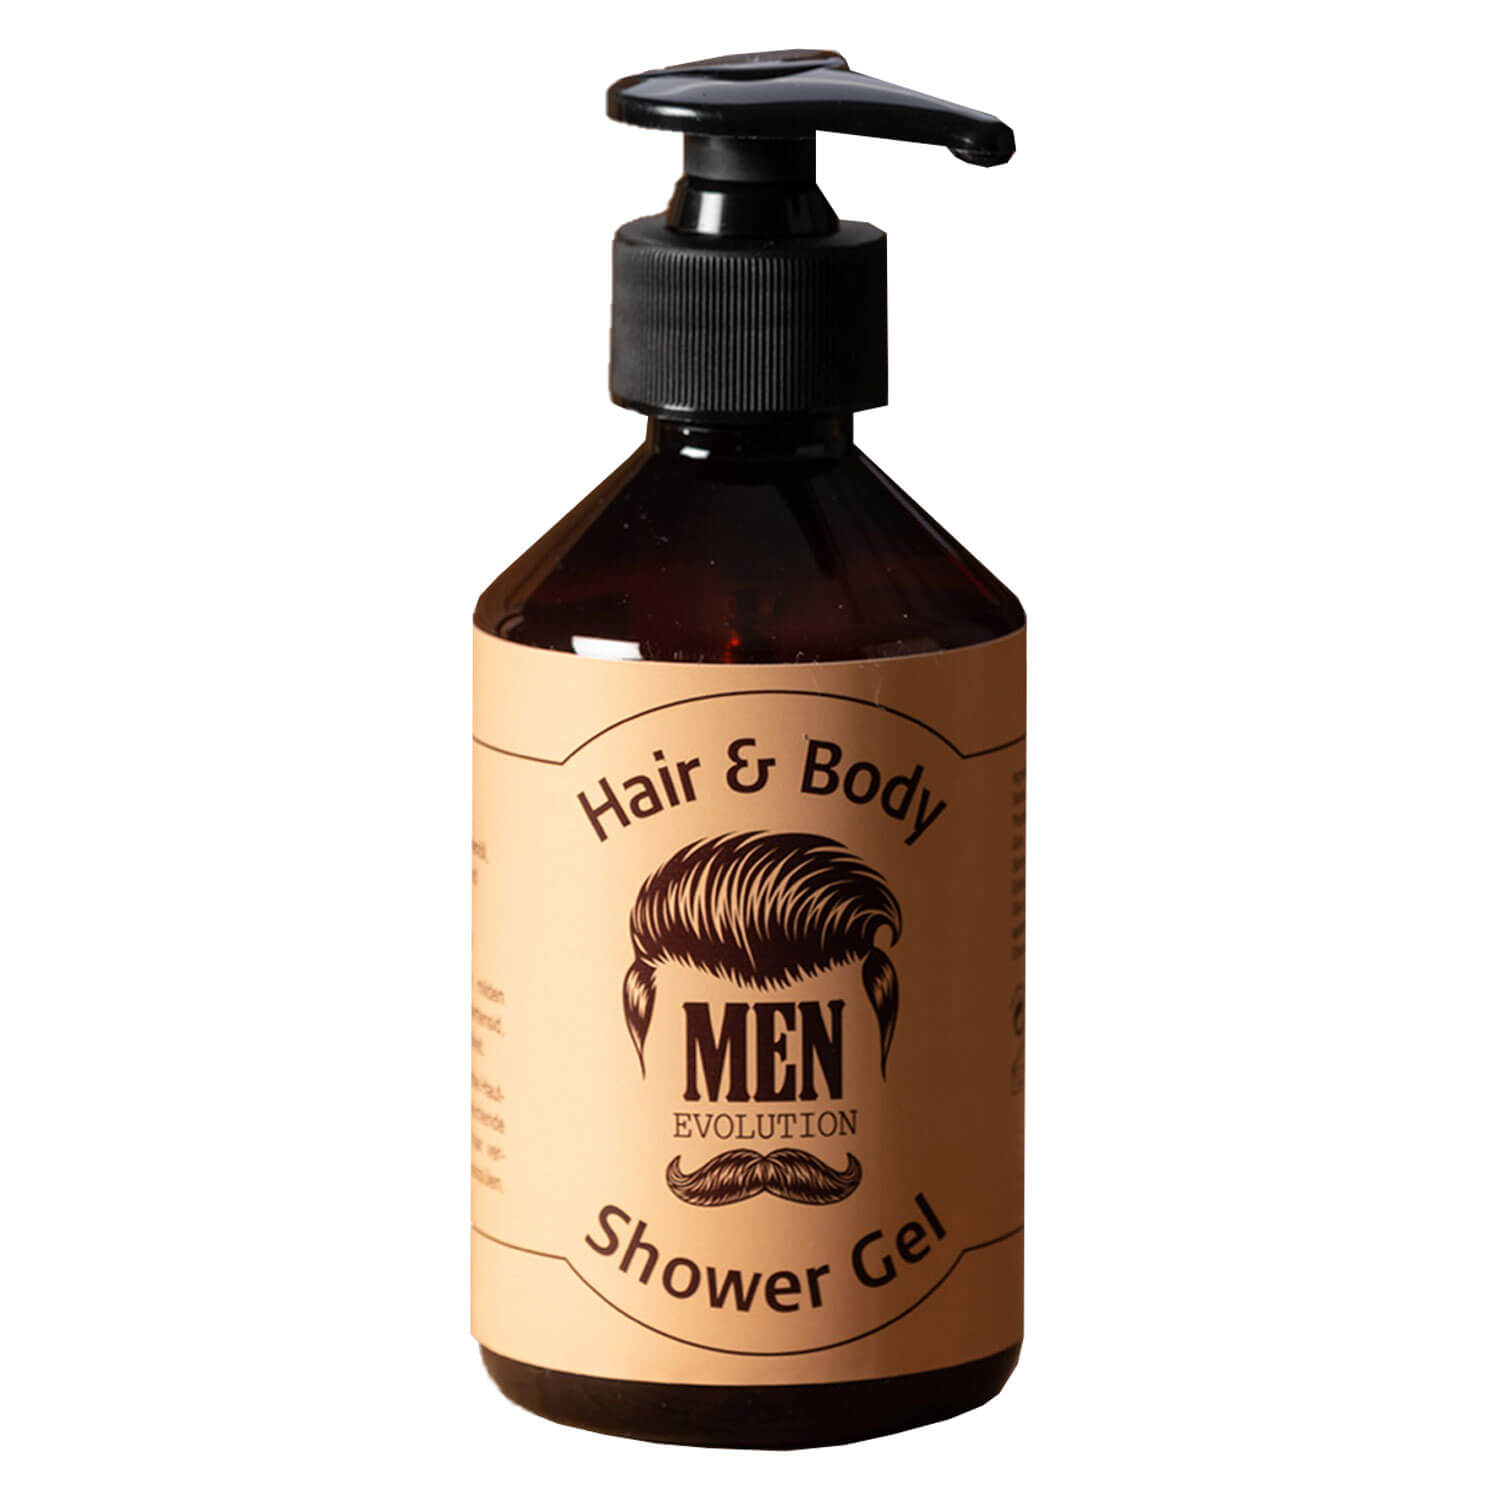 MEN Evolution - Hair & Body Shower Gel